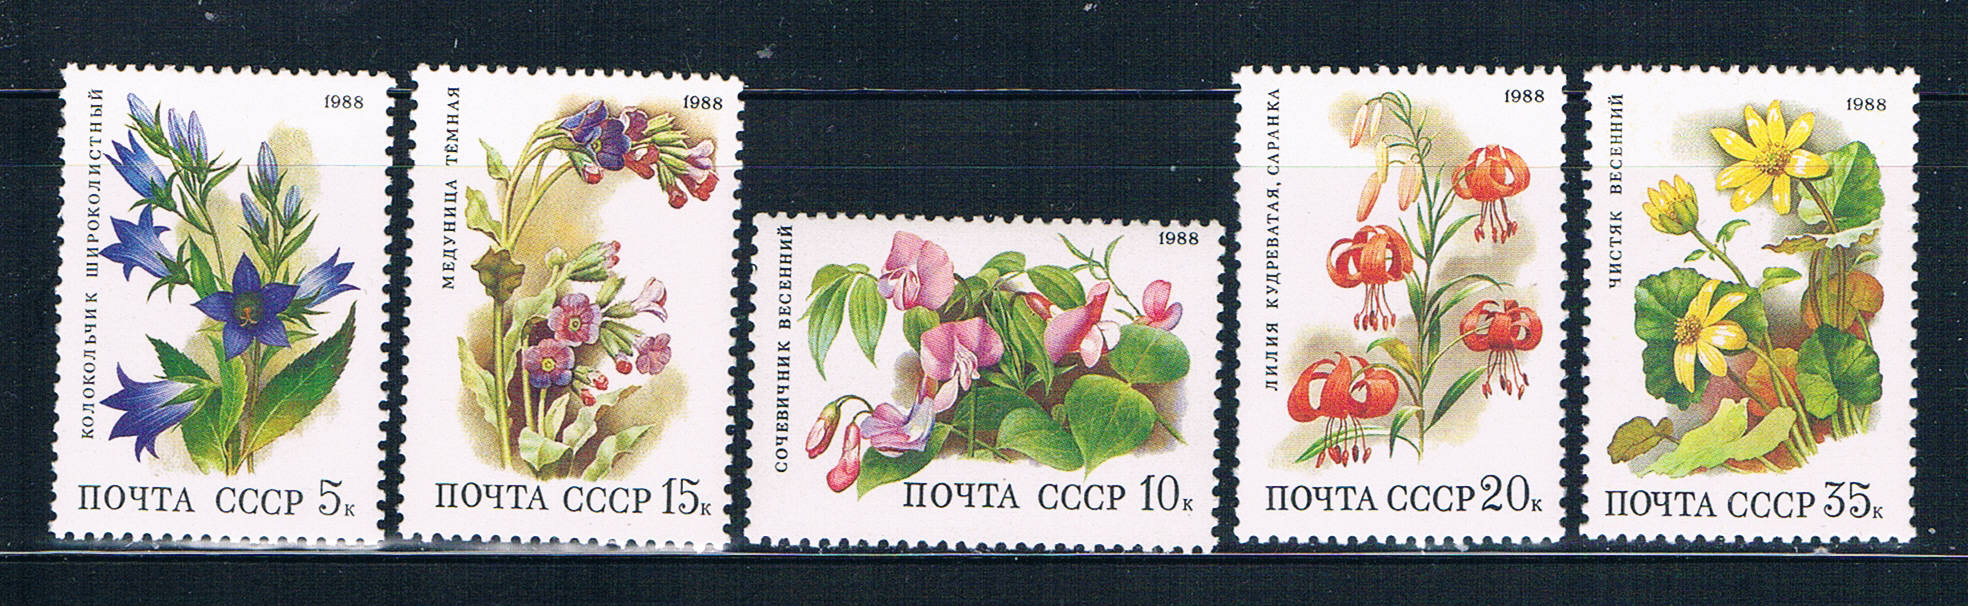 Russia 5687-91 MNH set Flowers 1988 (R0476)+